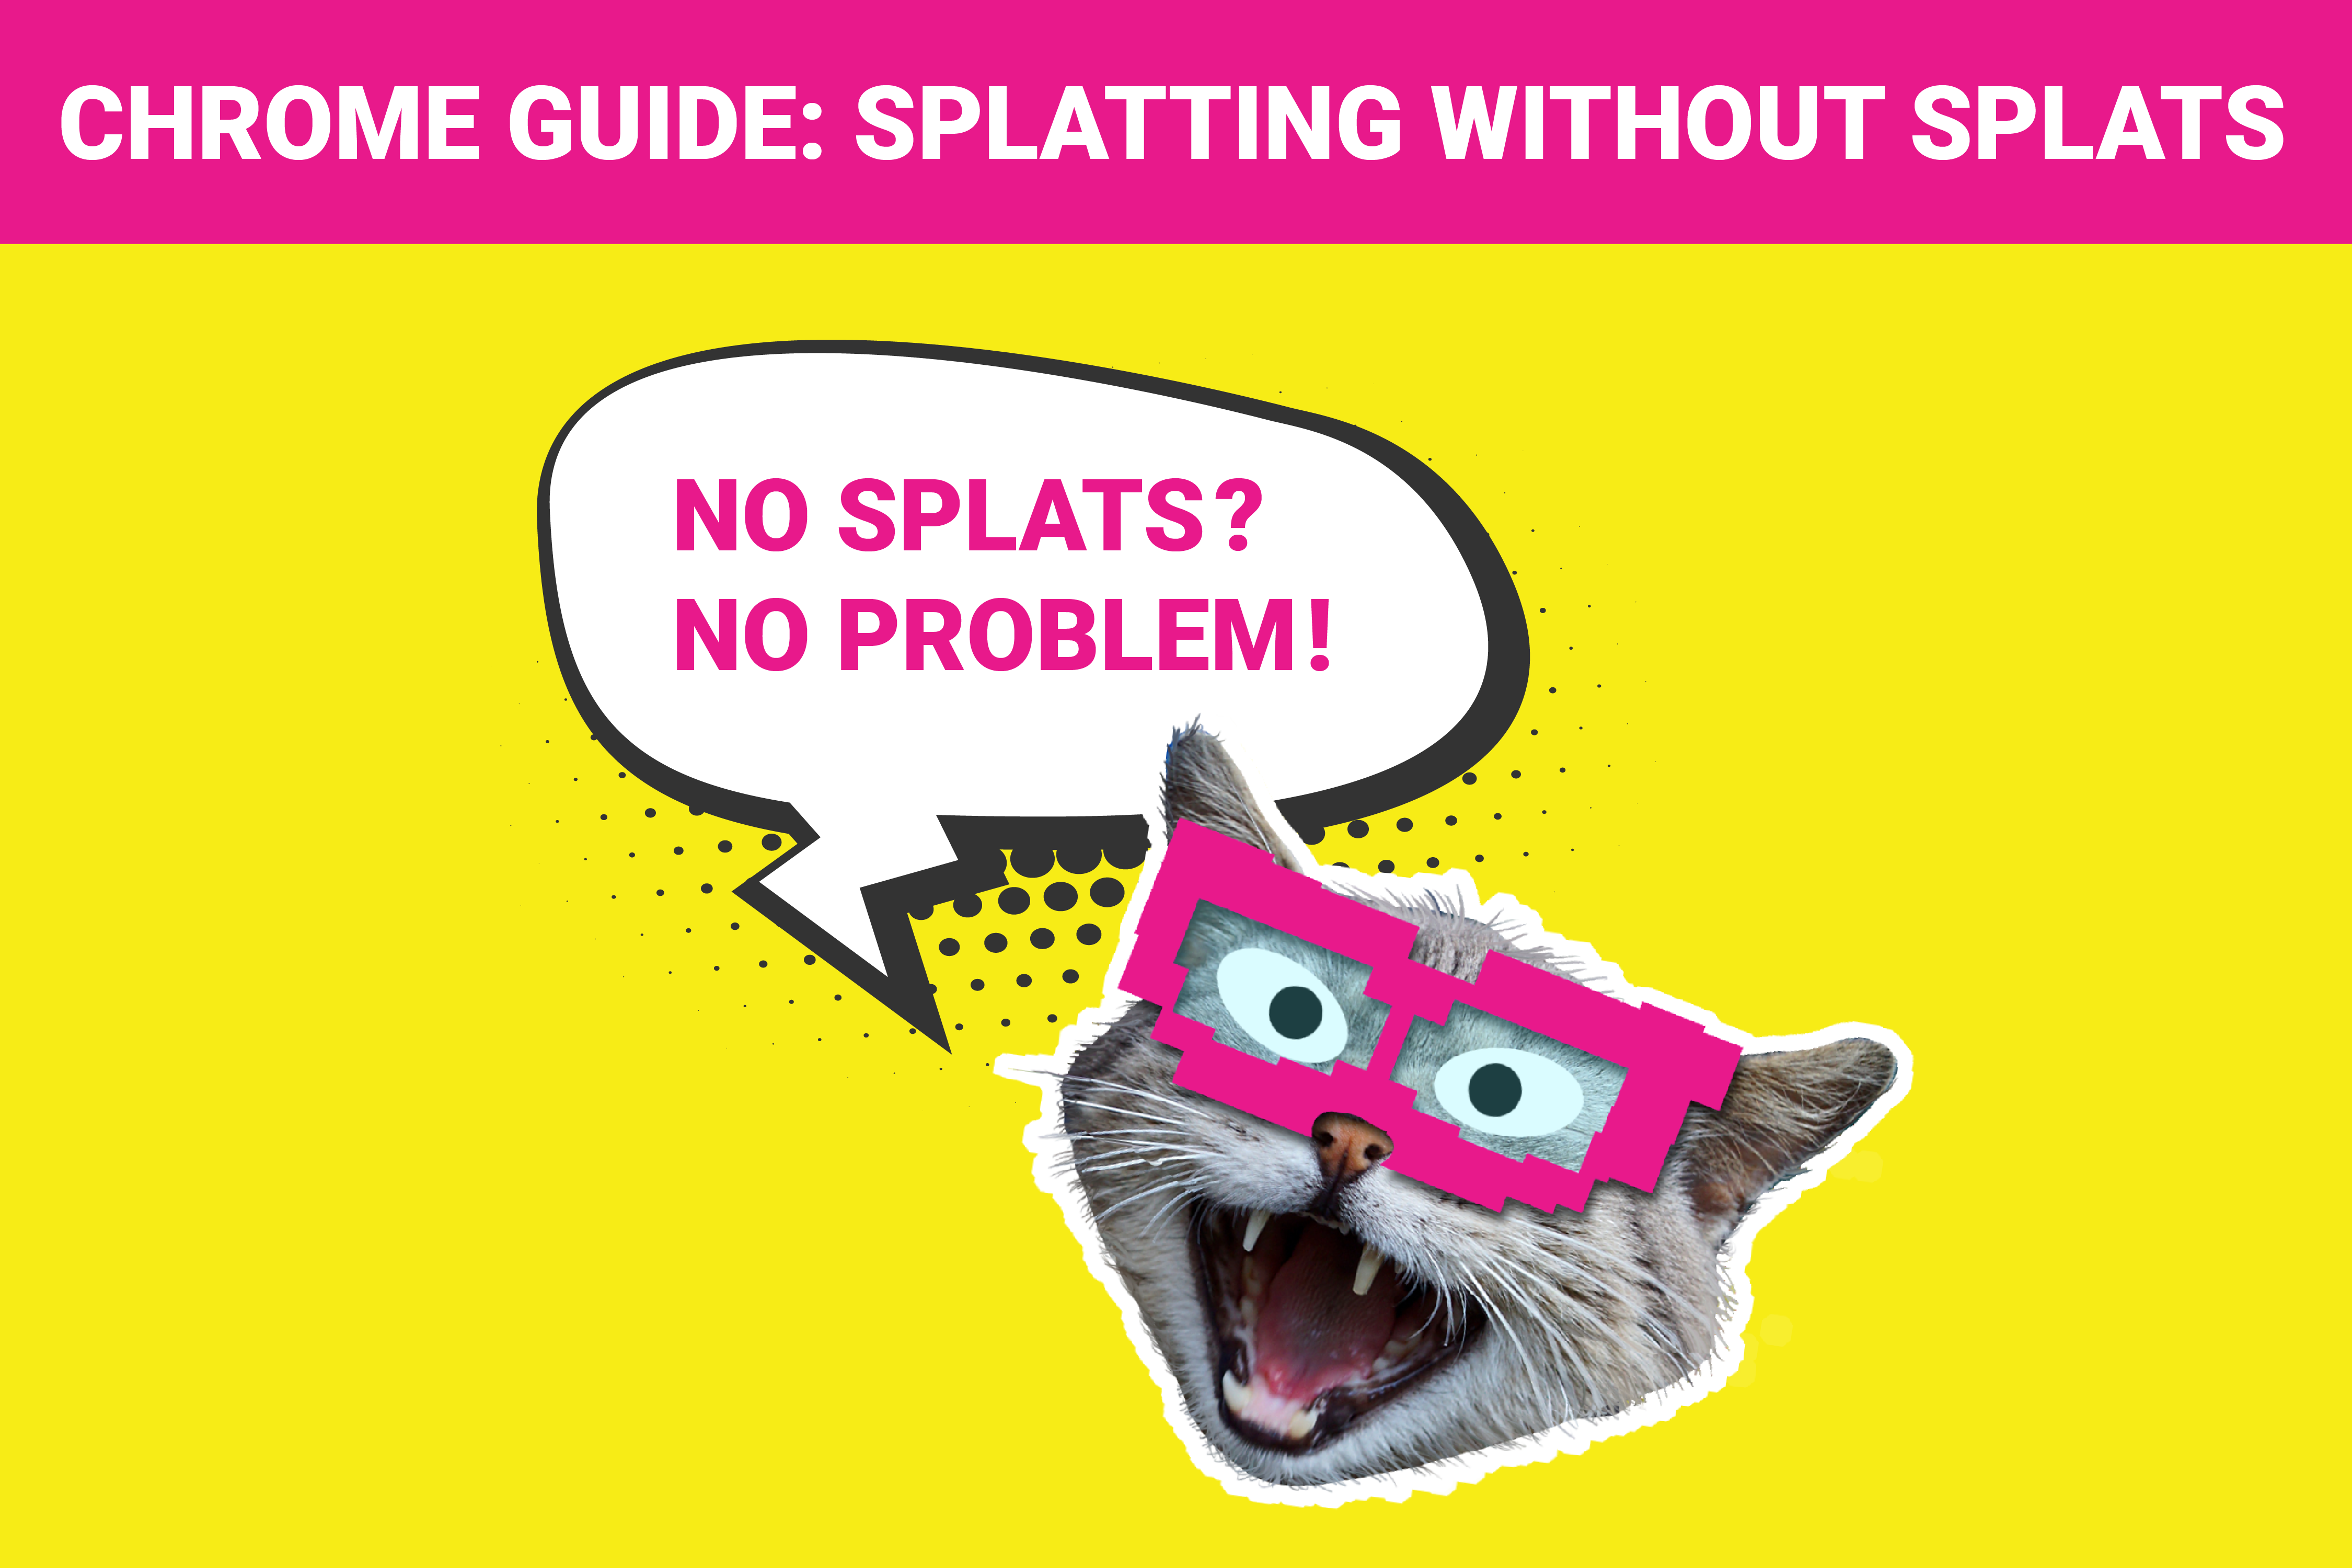 Chrome Guide: Splatting without Splats